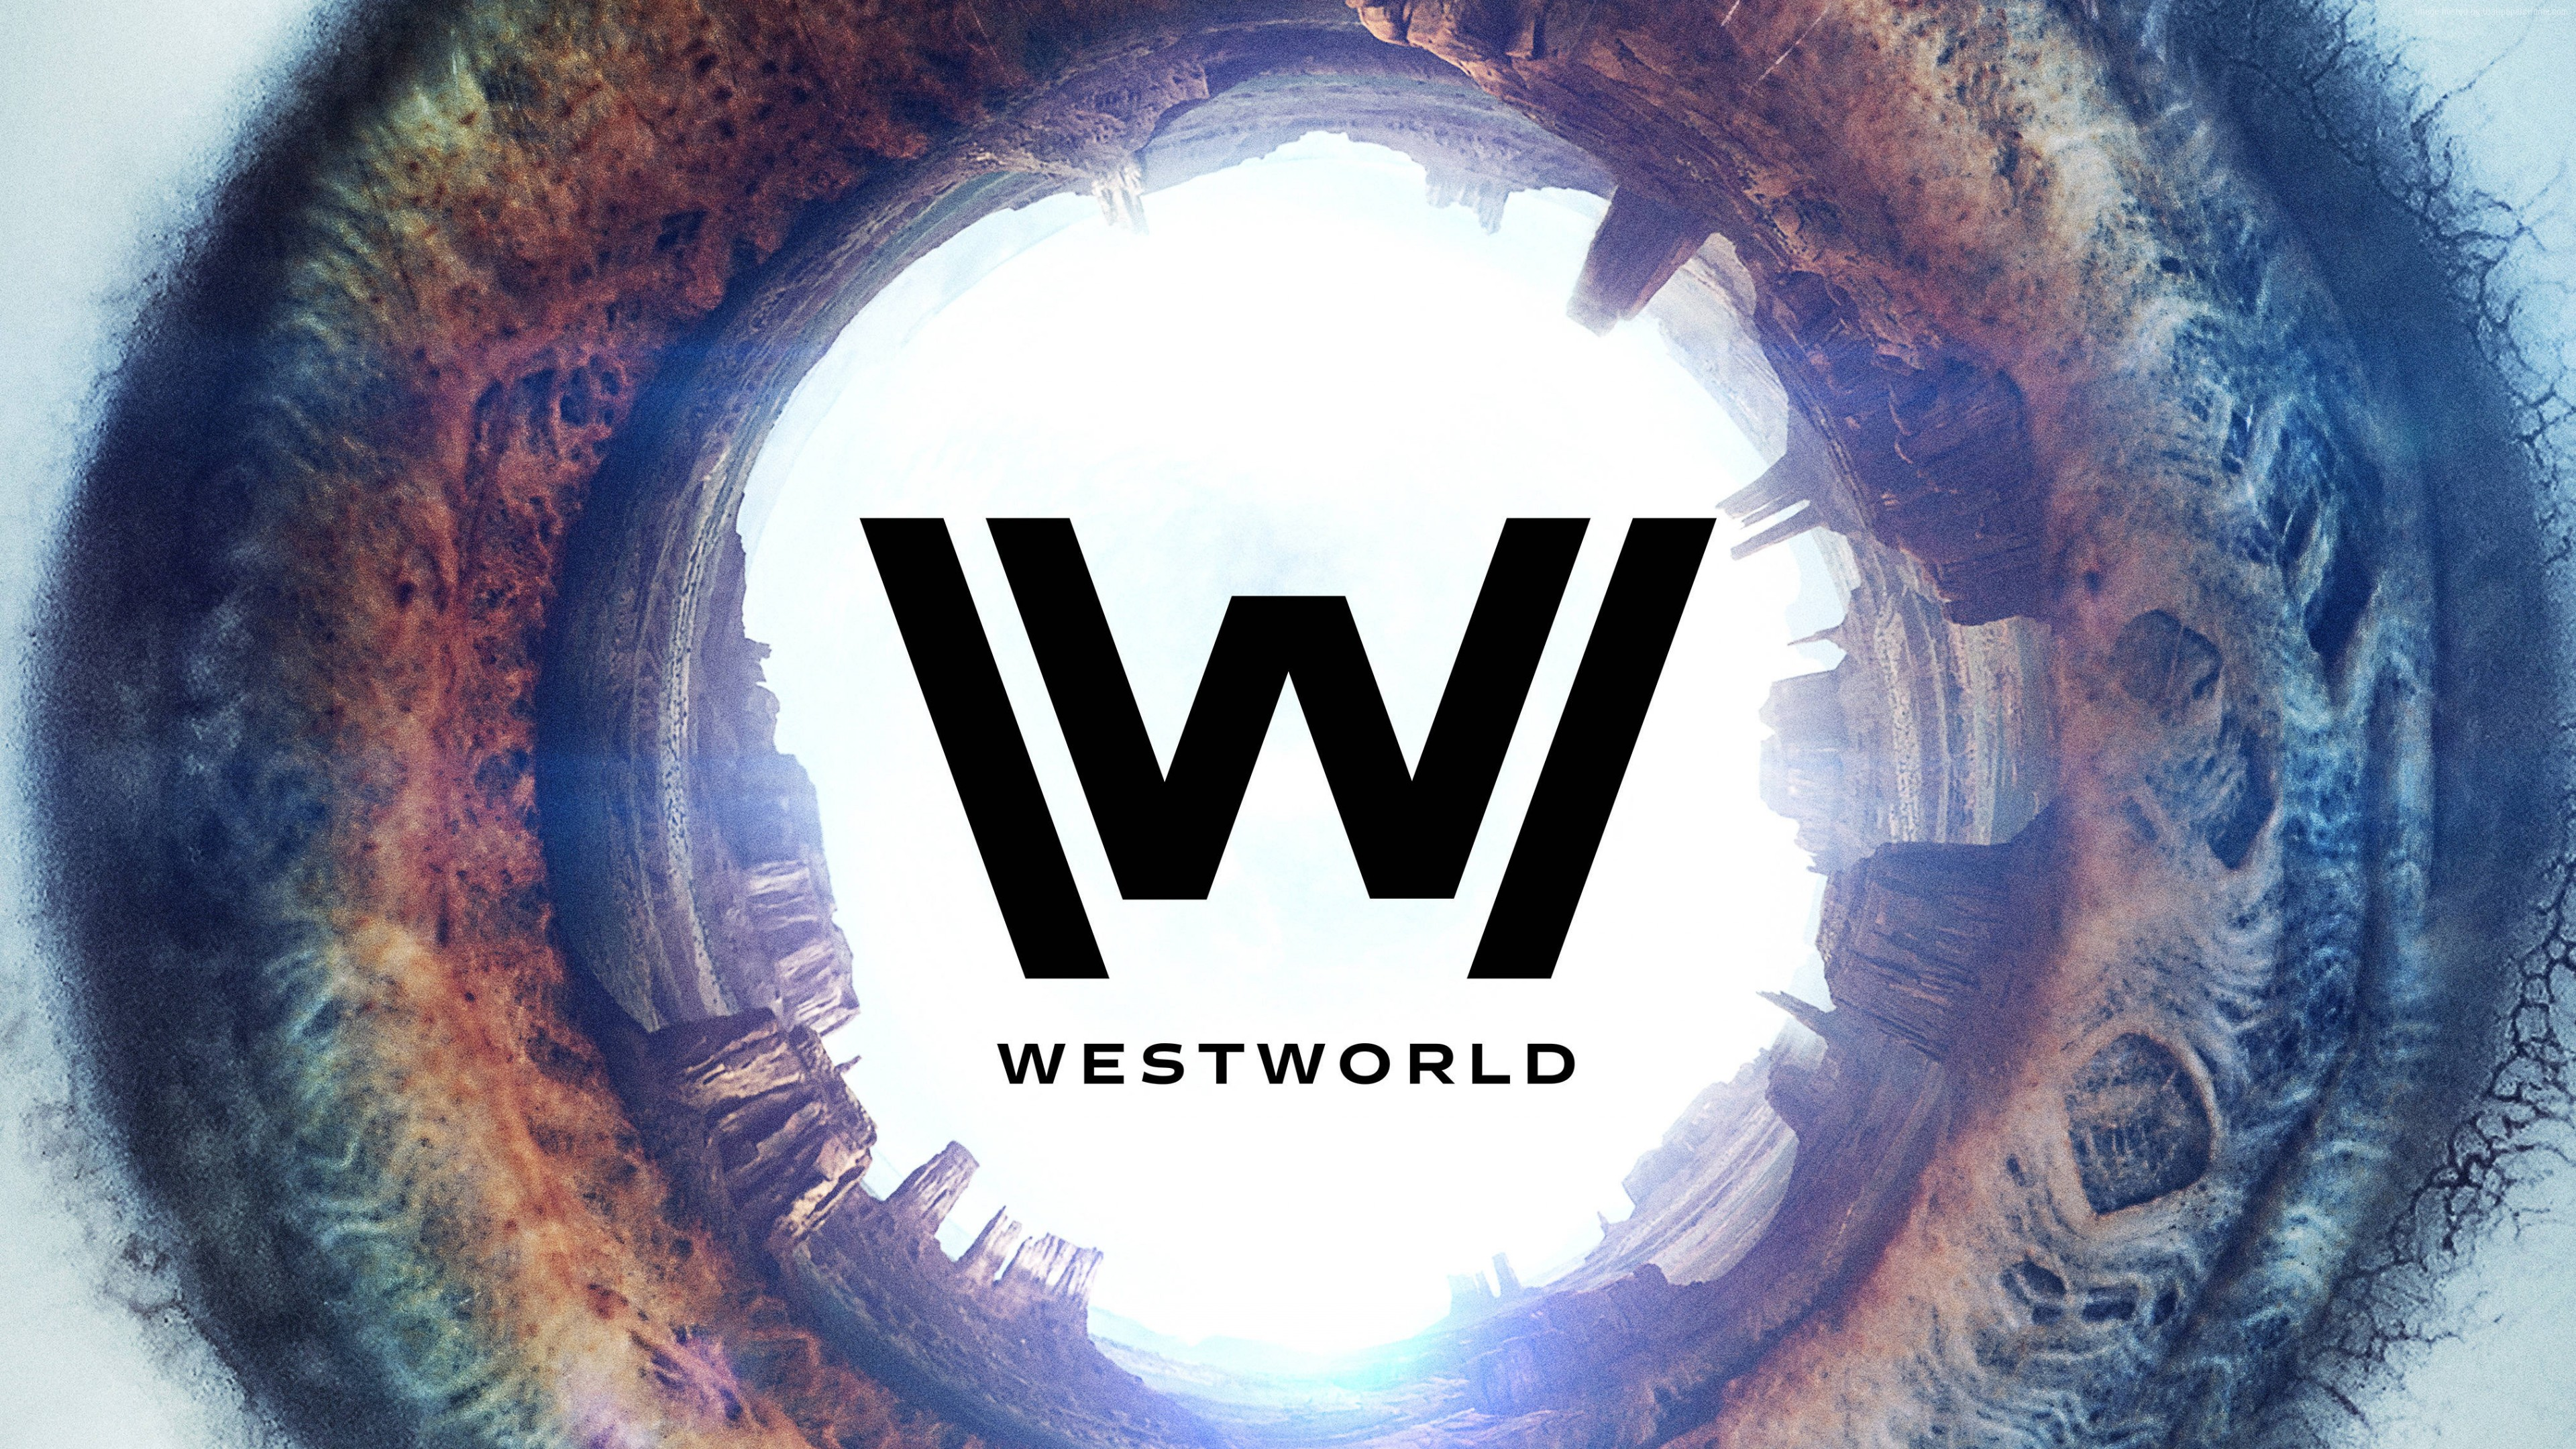 Wallpaper Westworld Season 2, Logo, TV Series, 4K, Movies